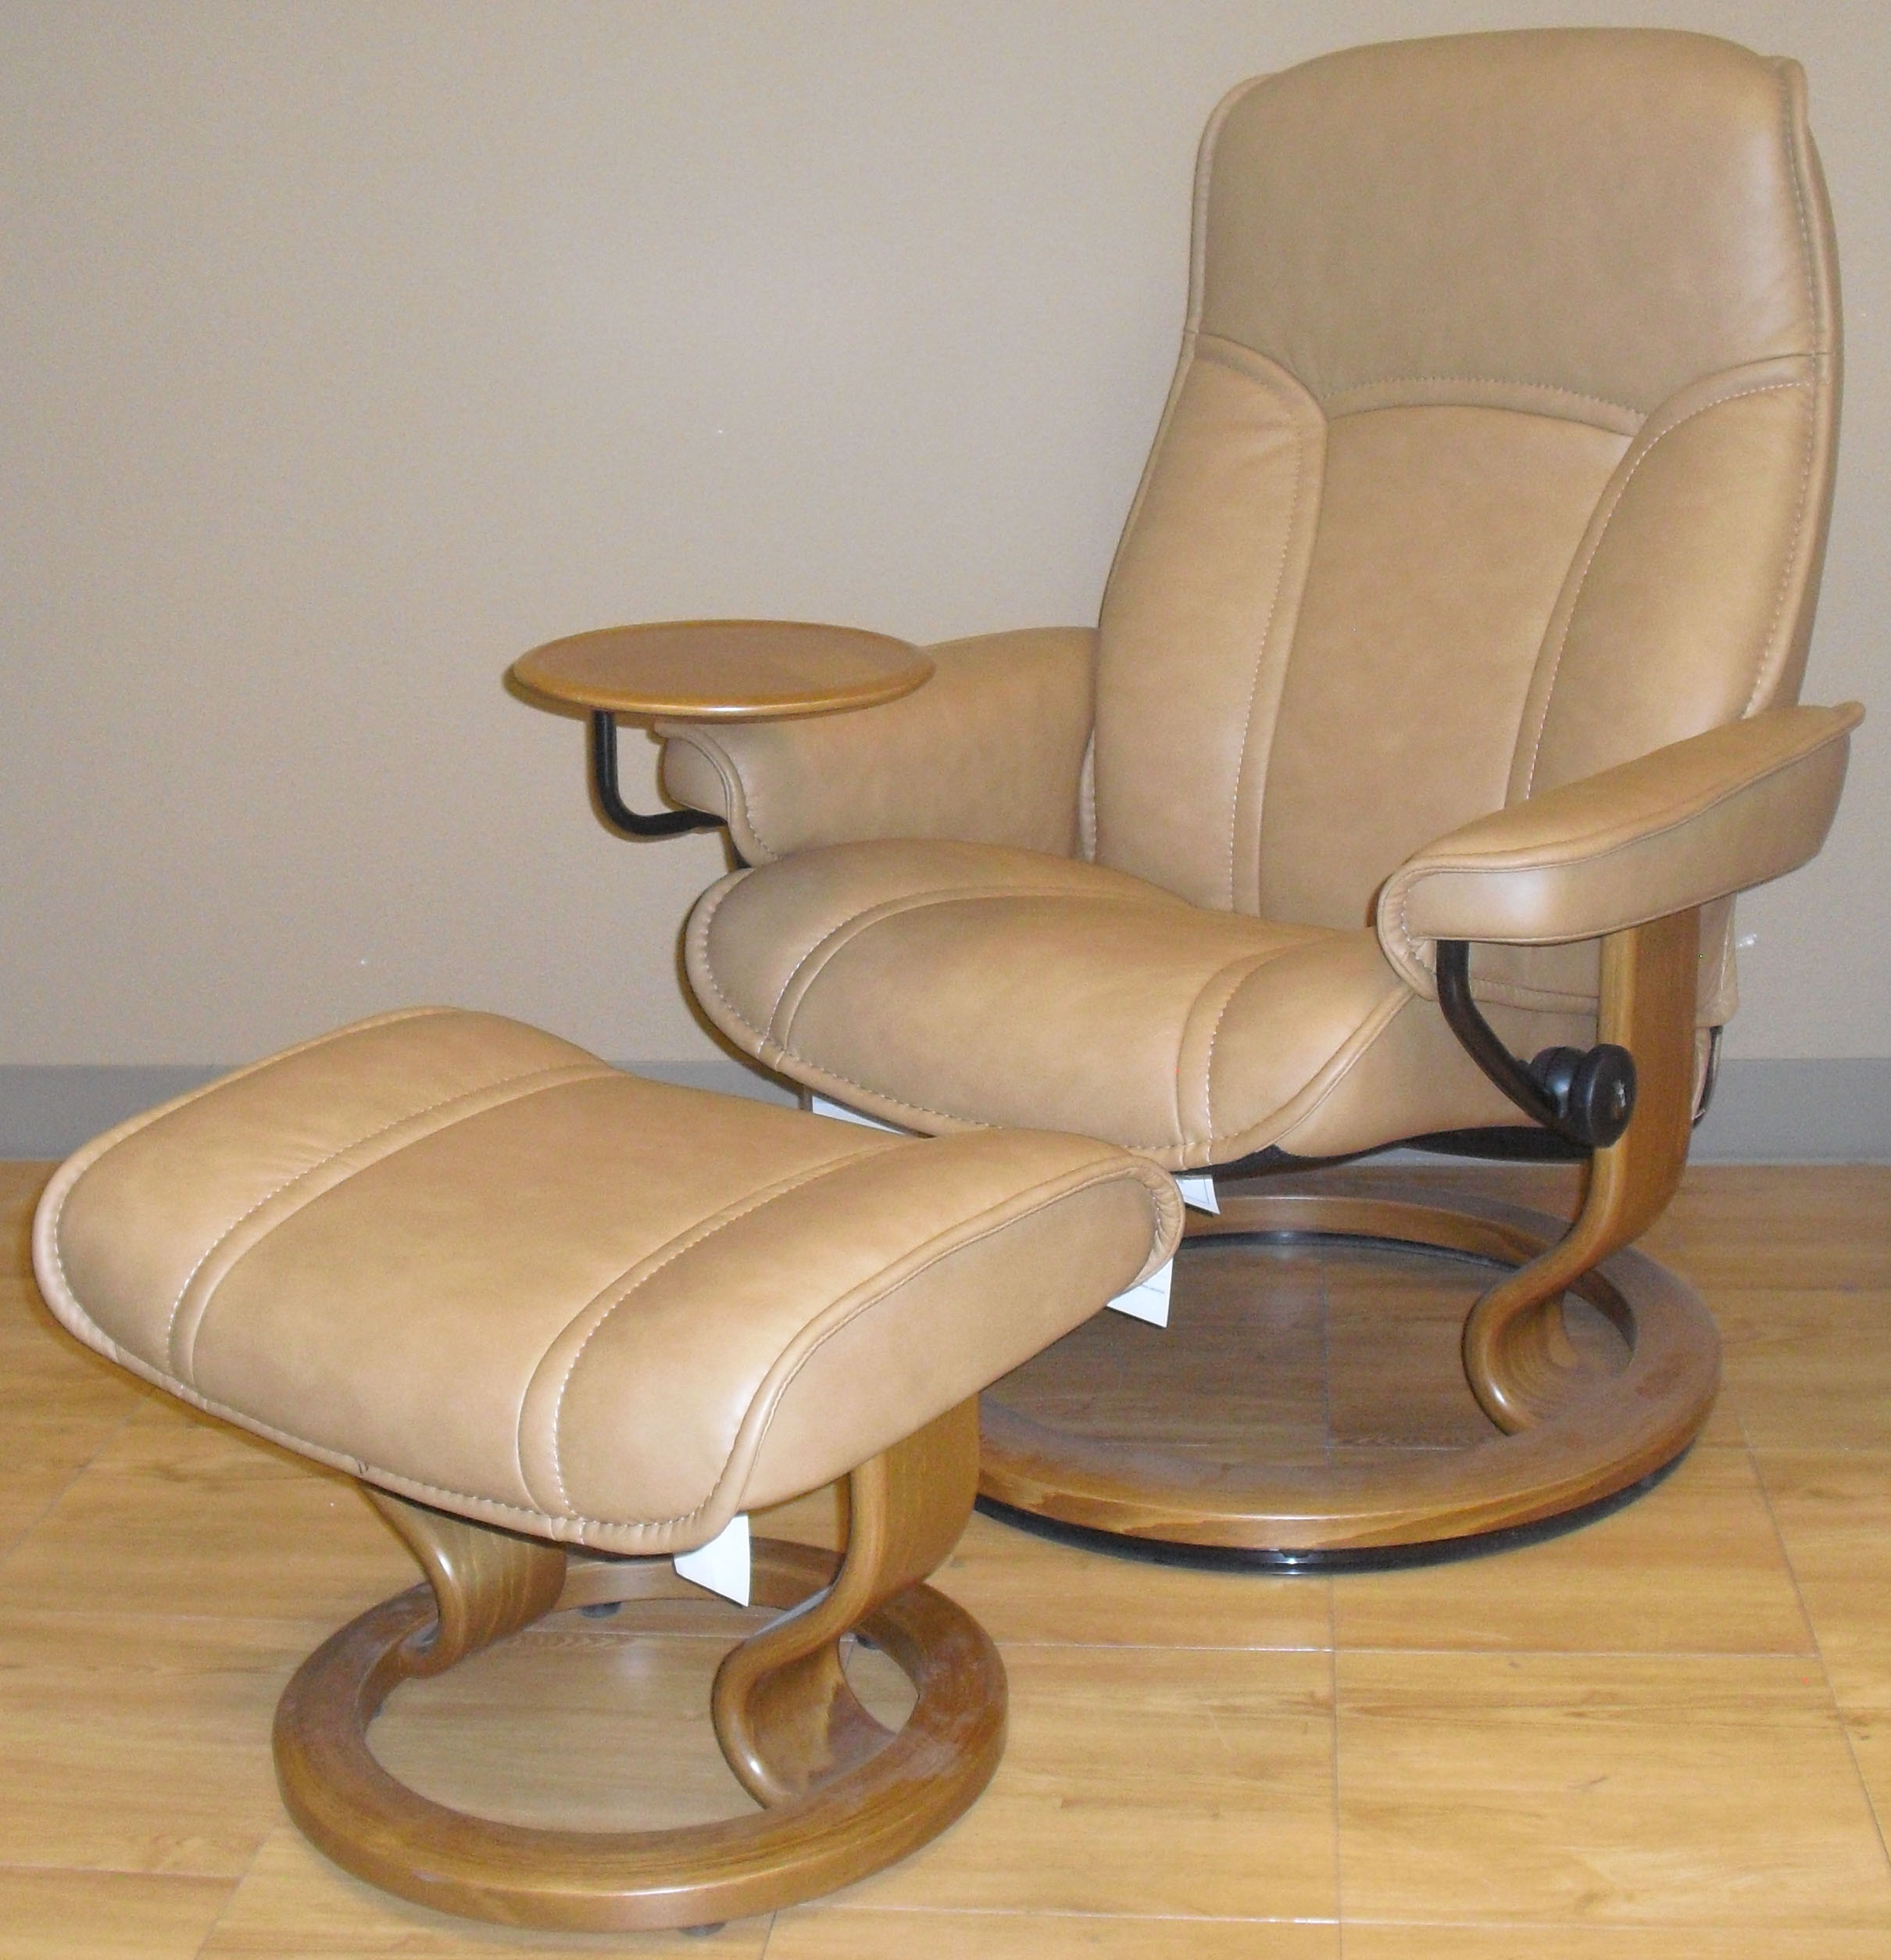 ergonomic recliner chair cool computer chairs ekornes stressless governor and senator lounger paloma taupe leather ottoman